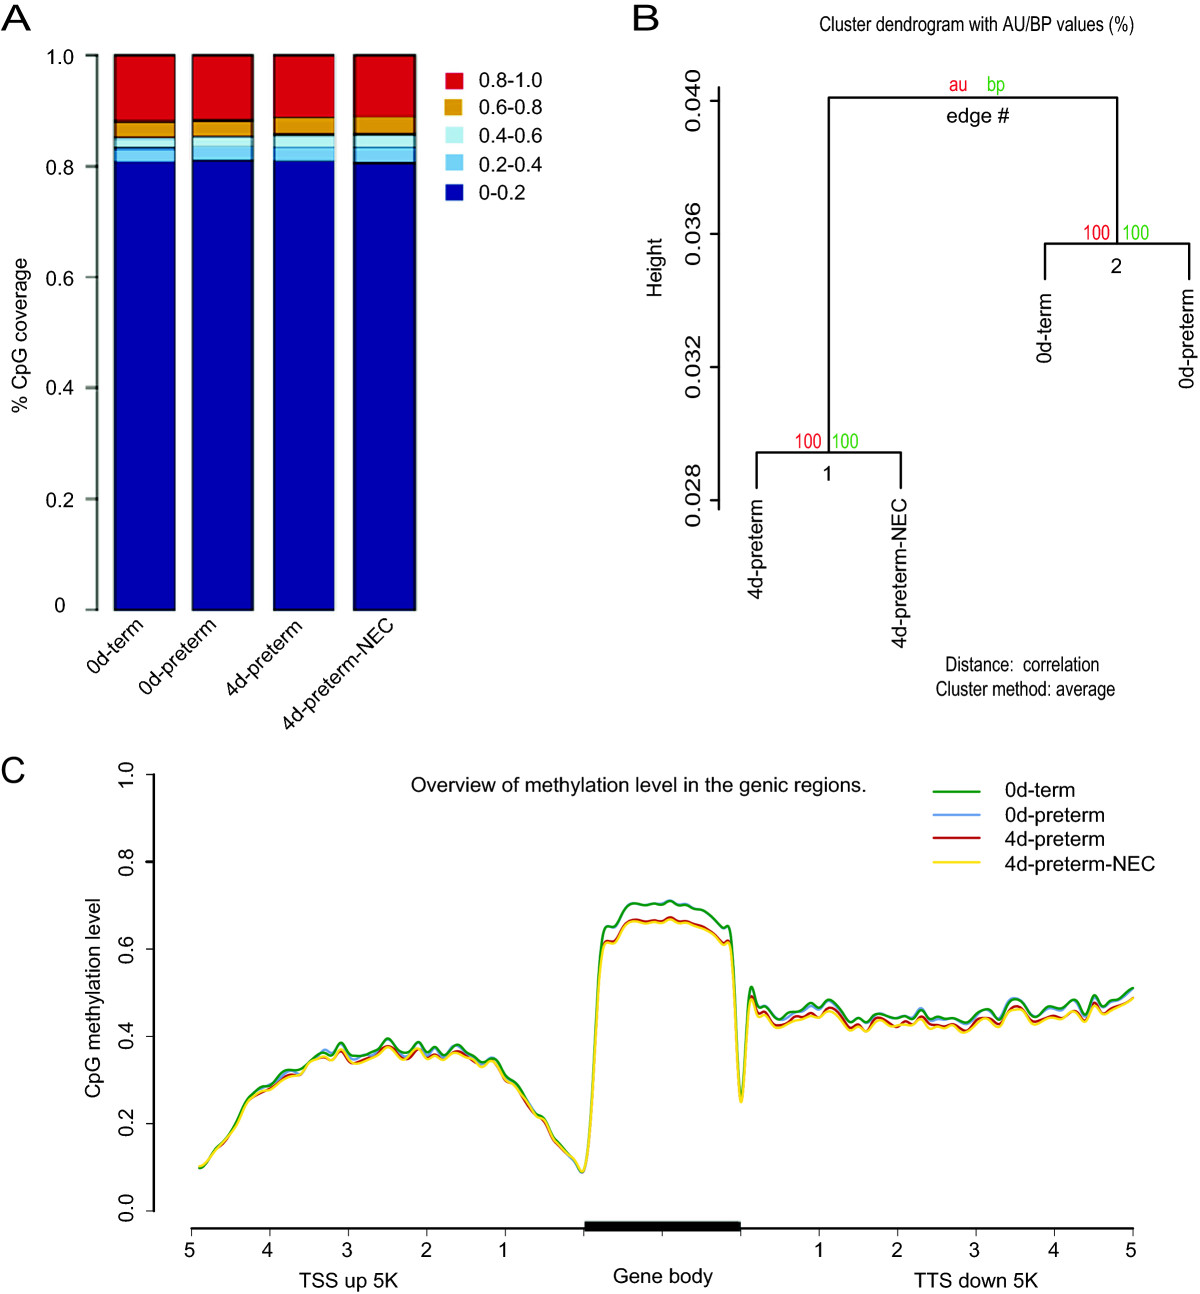 https://static-content.springer.com/image/art%3A10.1186%2F1471-2164-15-716/MediaObjects/12864_2014_Article_6393_Fig1_HTML.jpg